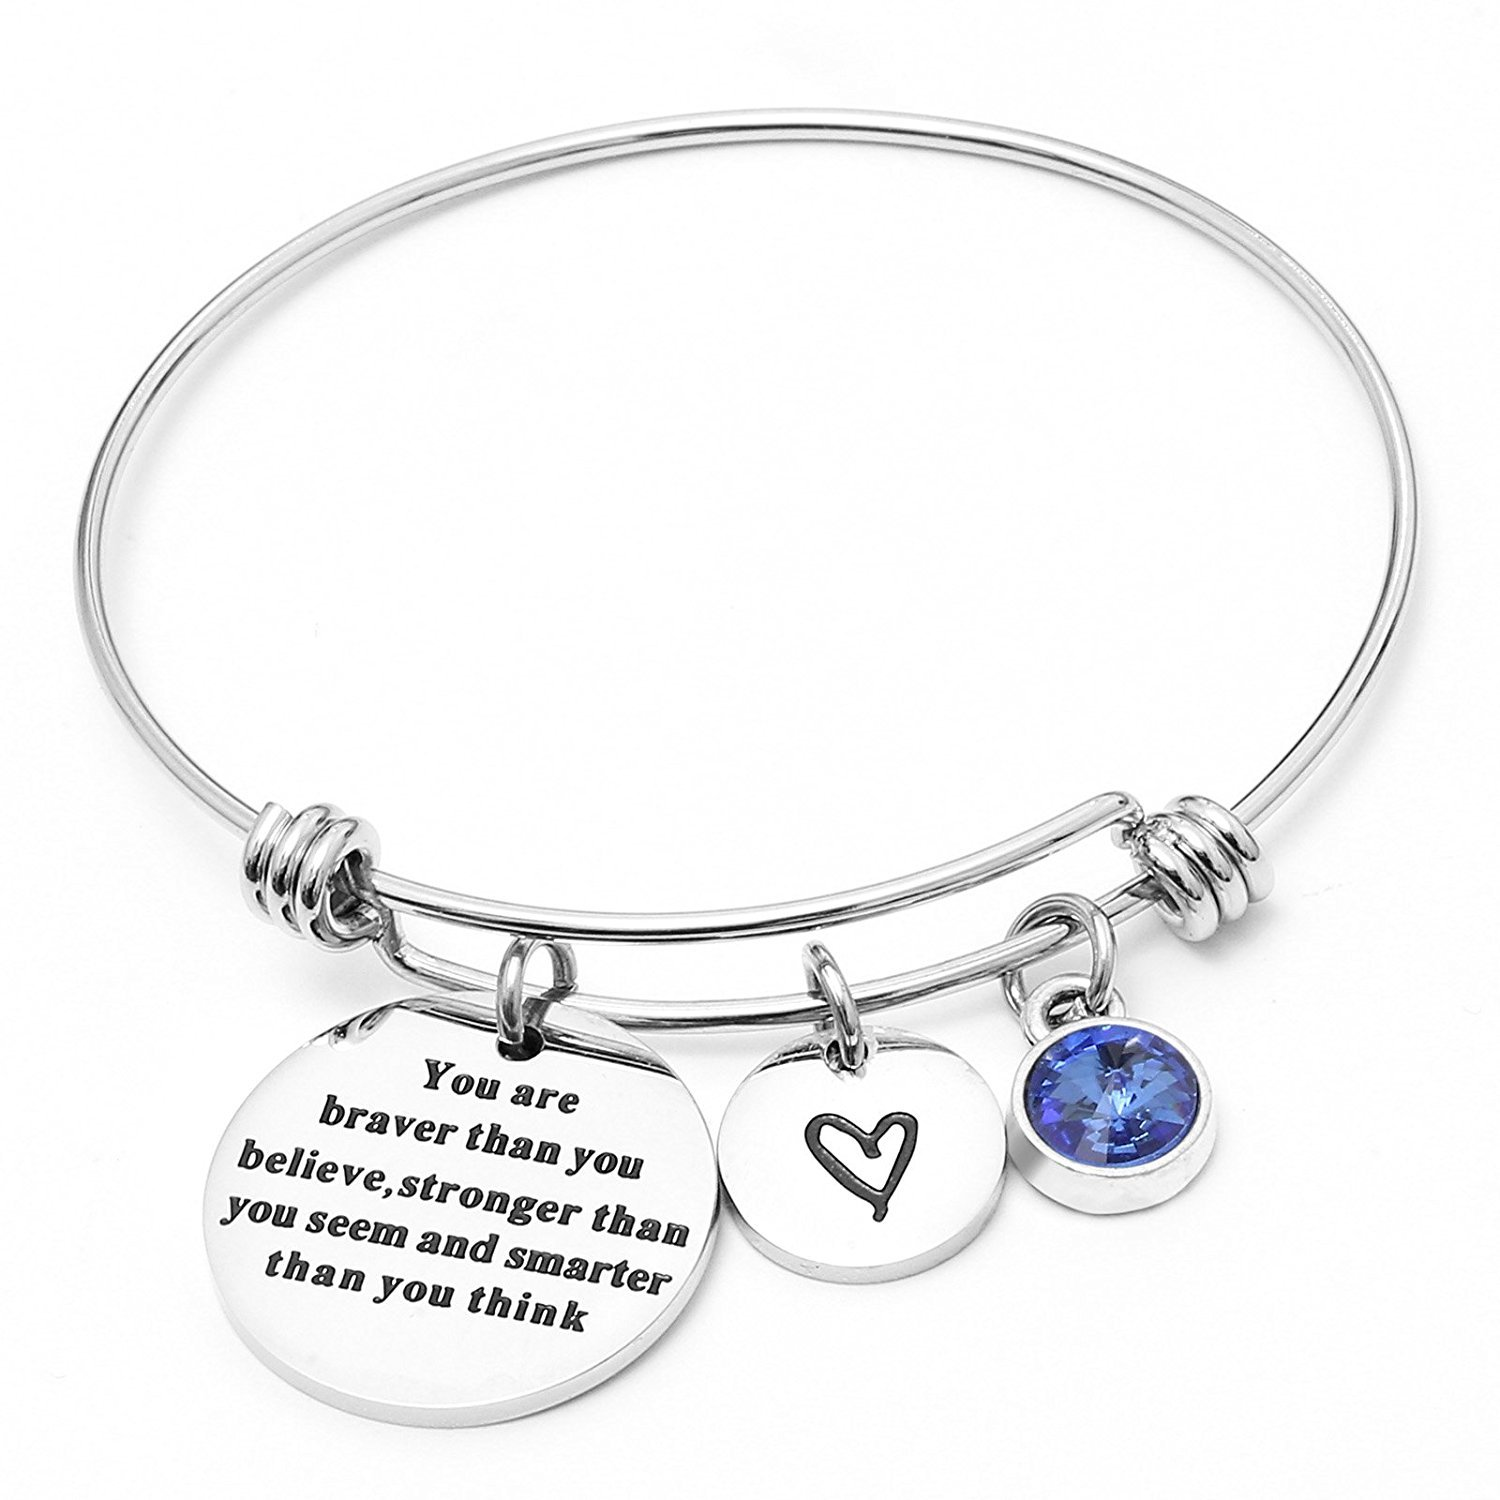 Angel's Draw Home You Are Braver than You Believe Adjustable Bangle Bracelets With 12 Months Color Birthstone for Women Girls Gift (Sapphire- September) by Angel's Draw Home (Image #1)